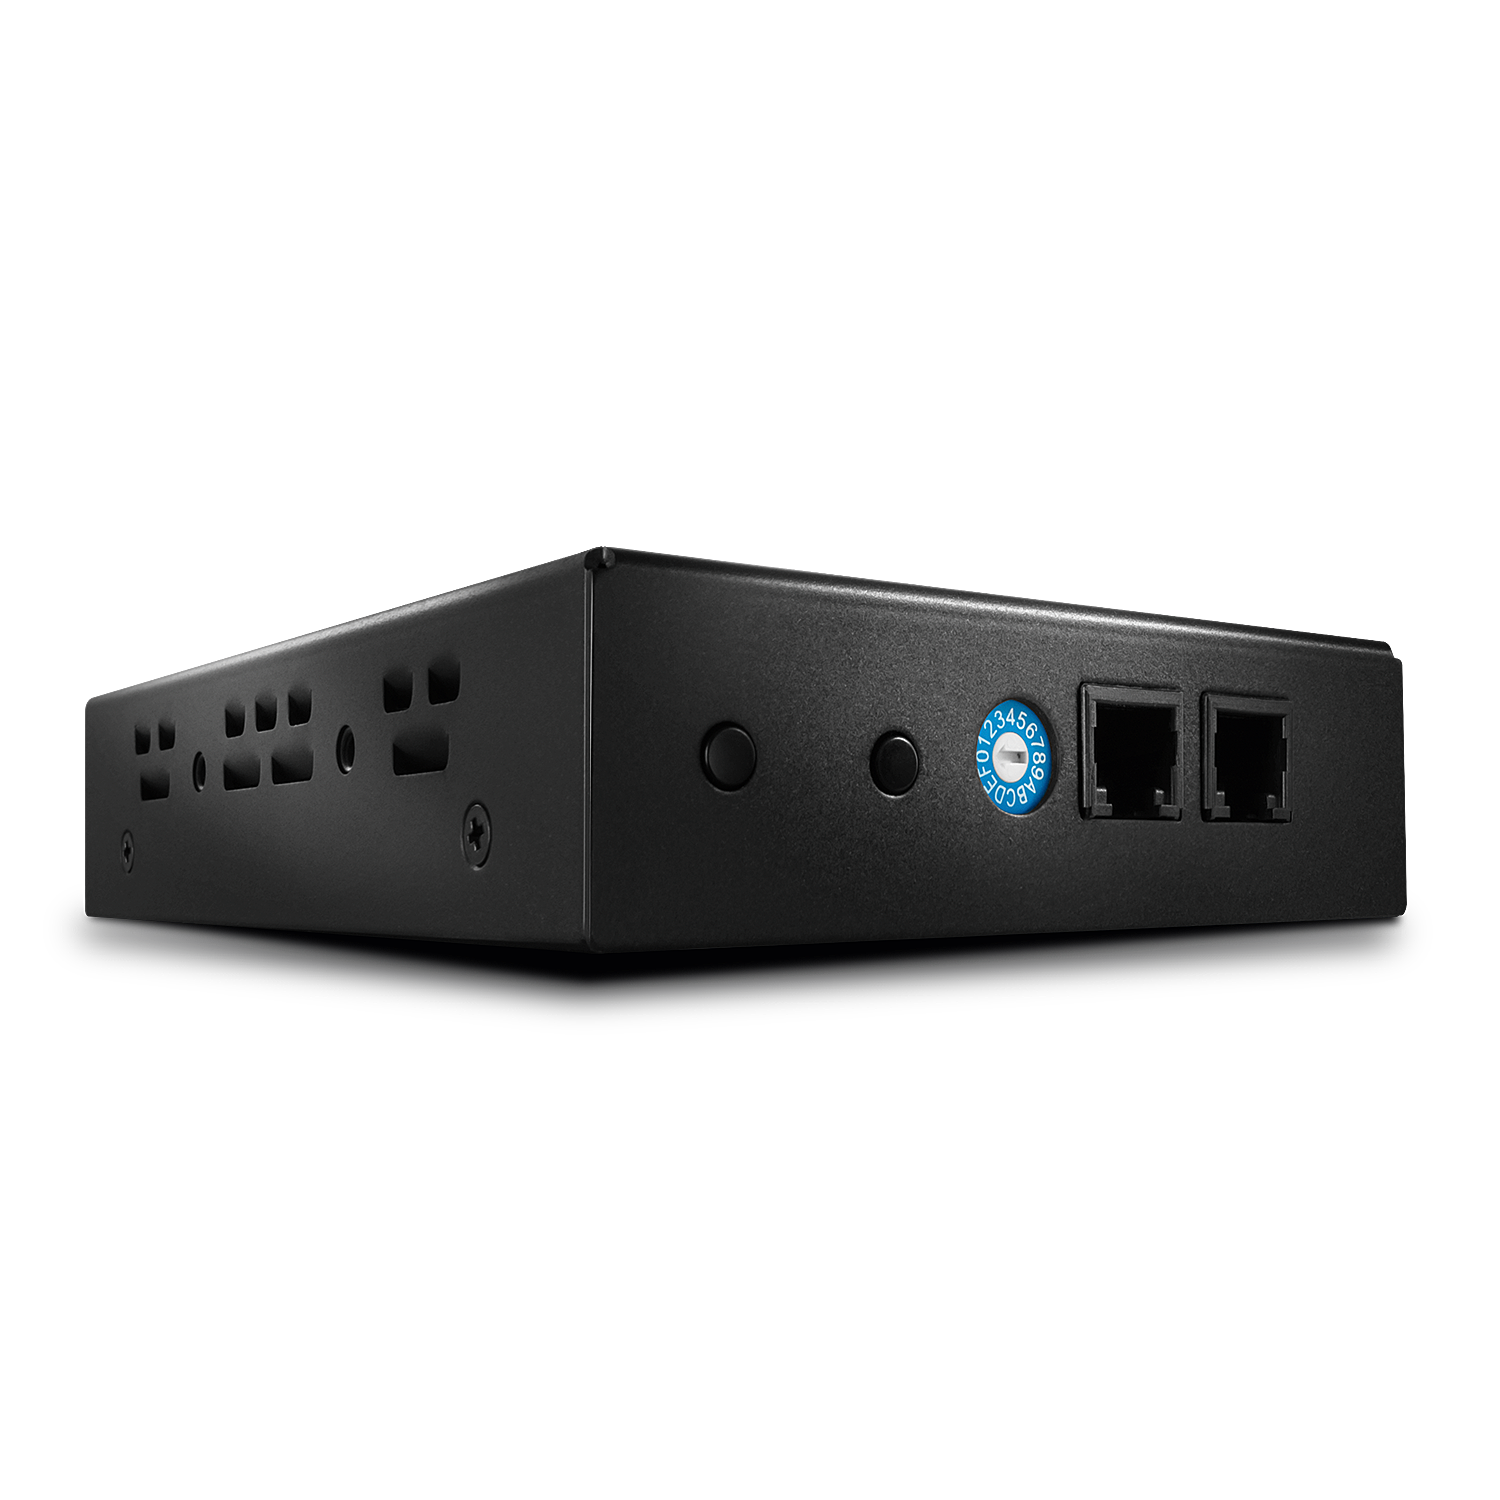 HDMI over IP Video Wall Extender - Receiver